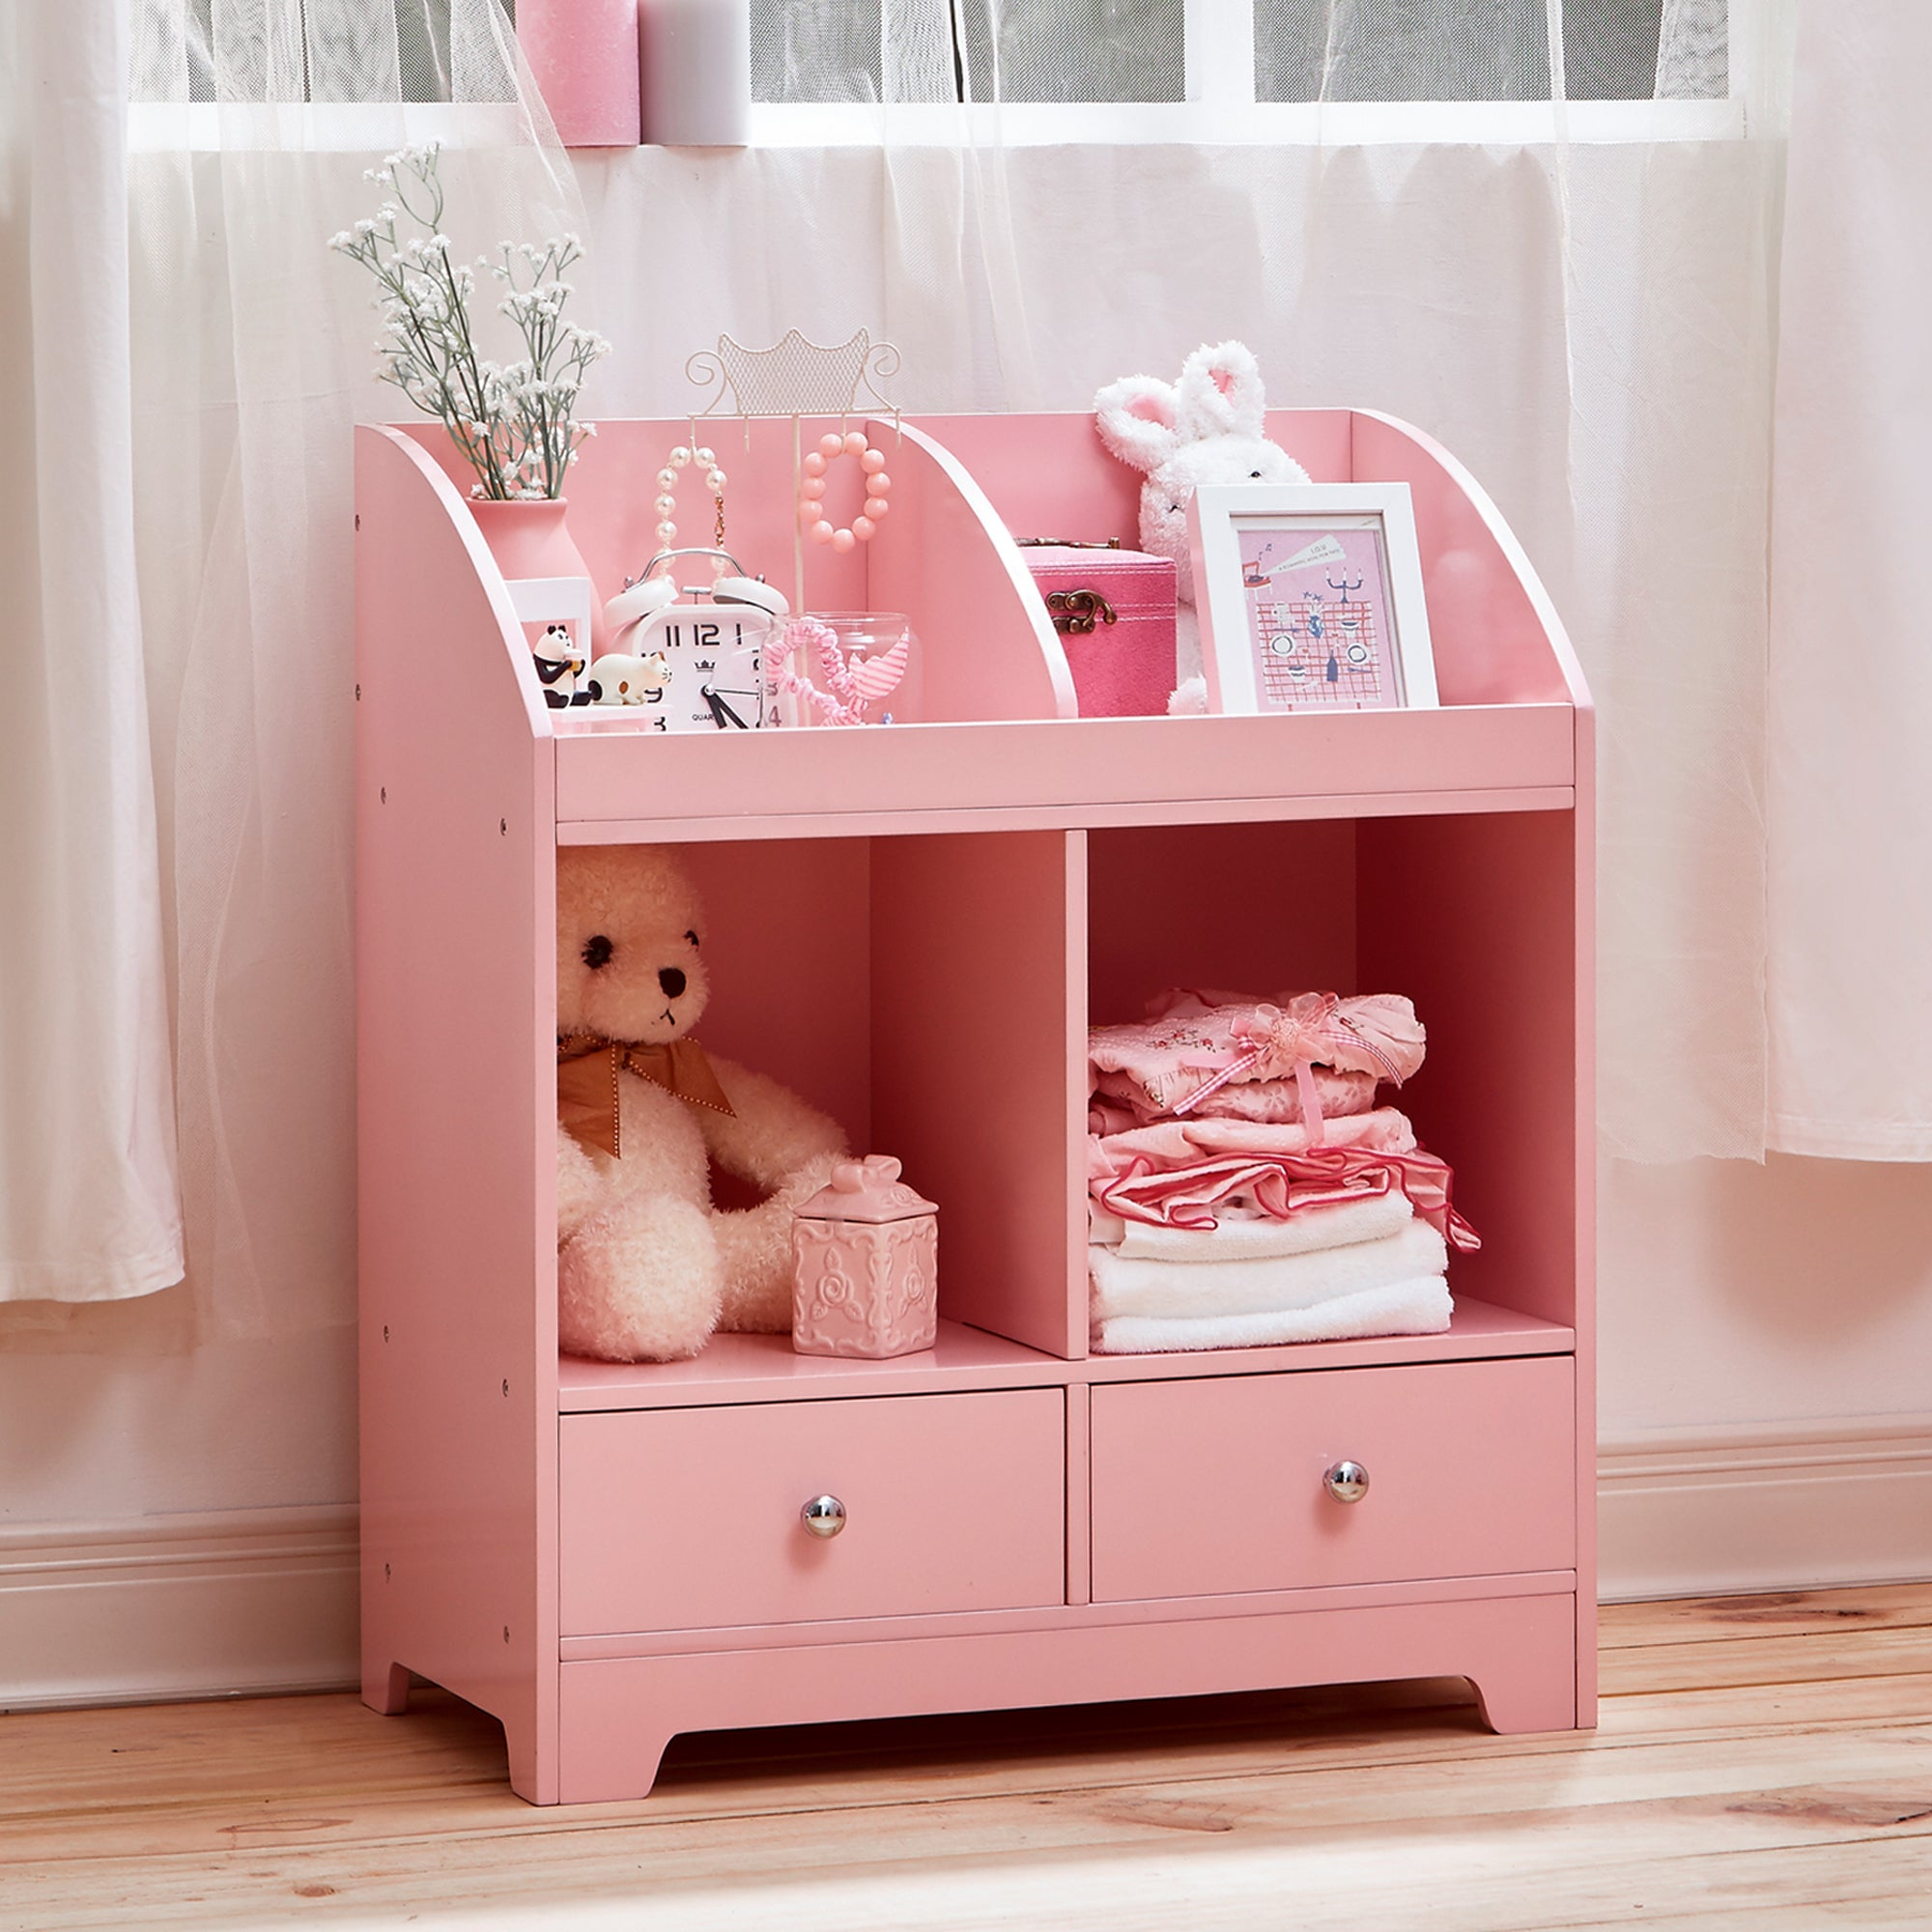 Shop Teamson Kidu0027s Windsor Pink Wood And MDF Cubby Storage   On Sale   Free  Shipping Today   Overstock.com   13141858